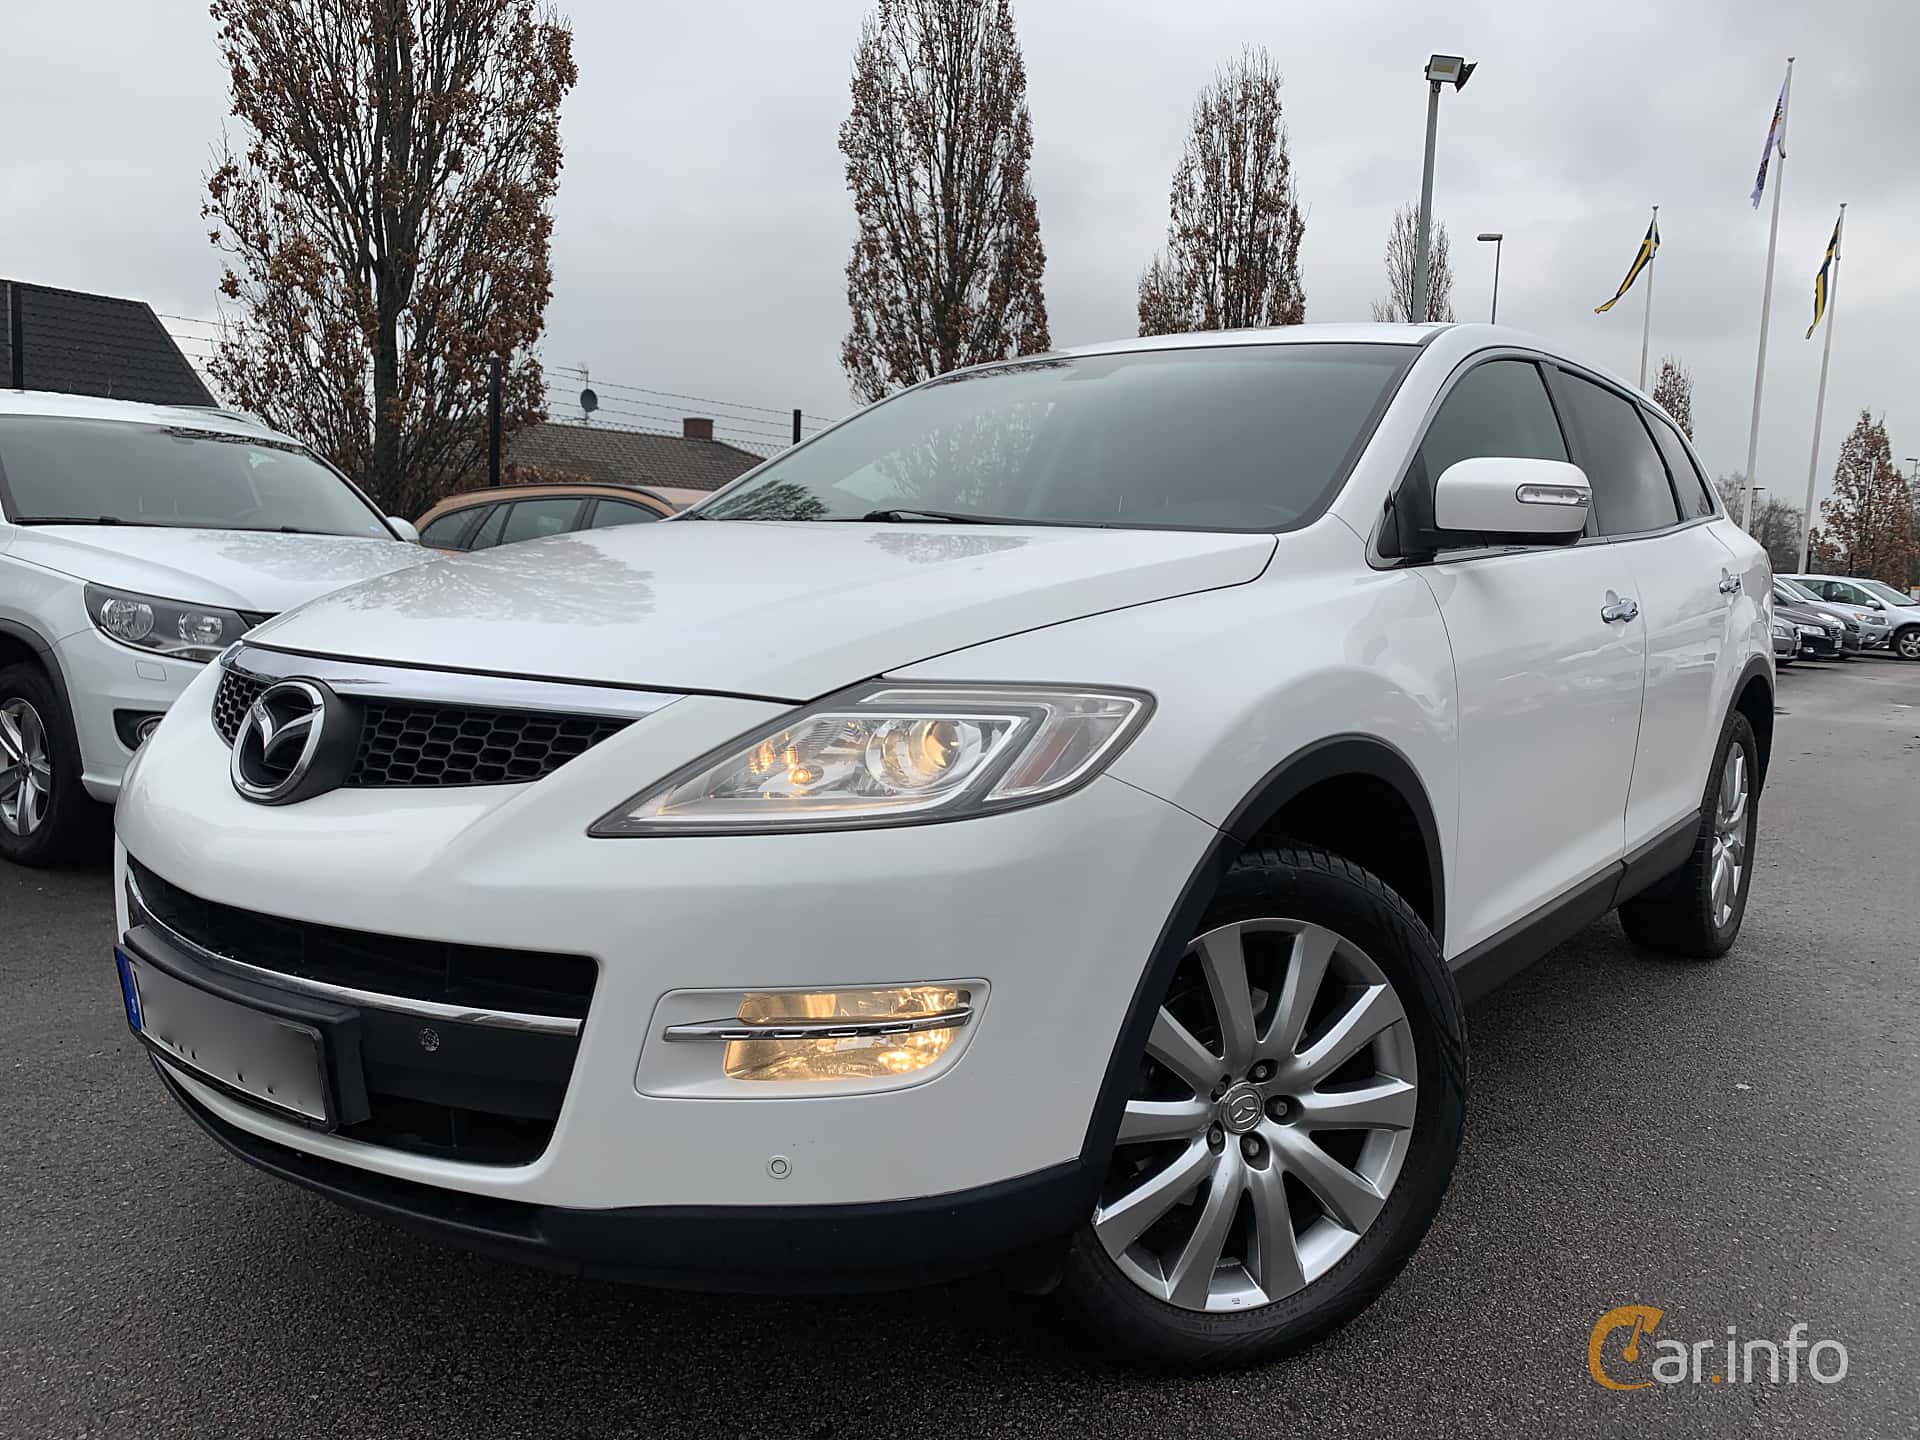 Mazda CX-9 3.7 AWD Automatic, 276hp, 2008